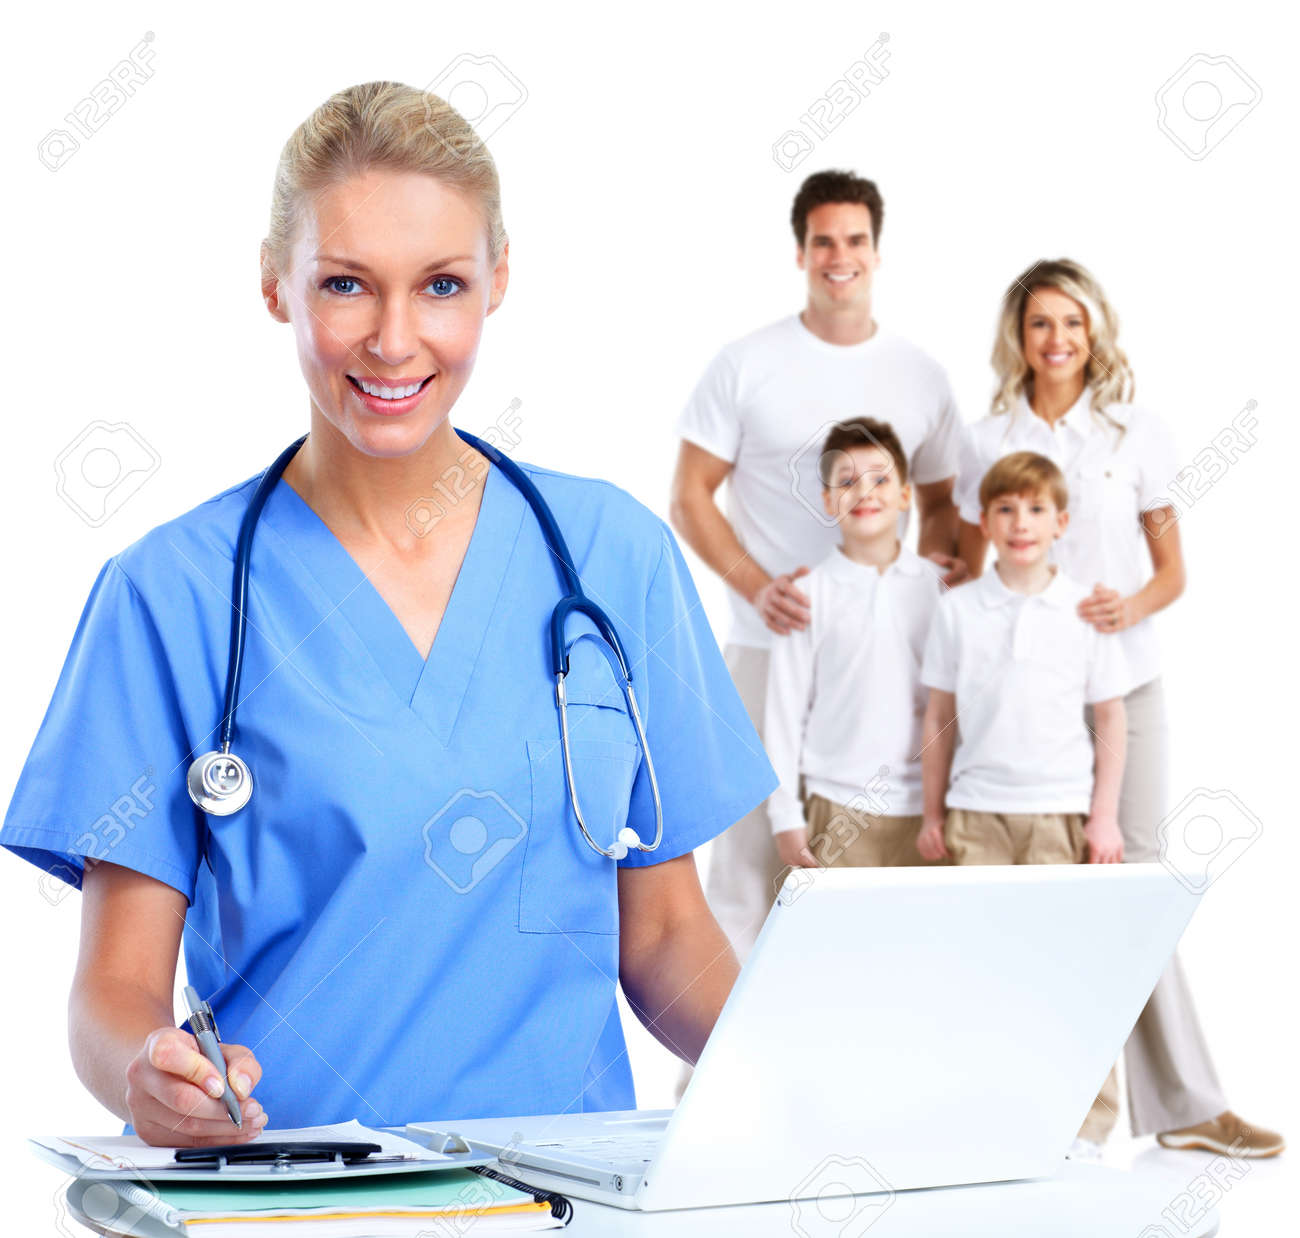 Family doctor woman and patients isolated over white background. Stock Photo - 54737612